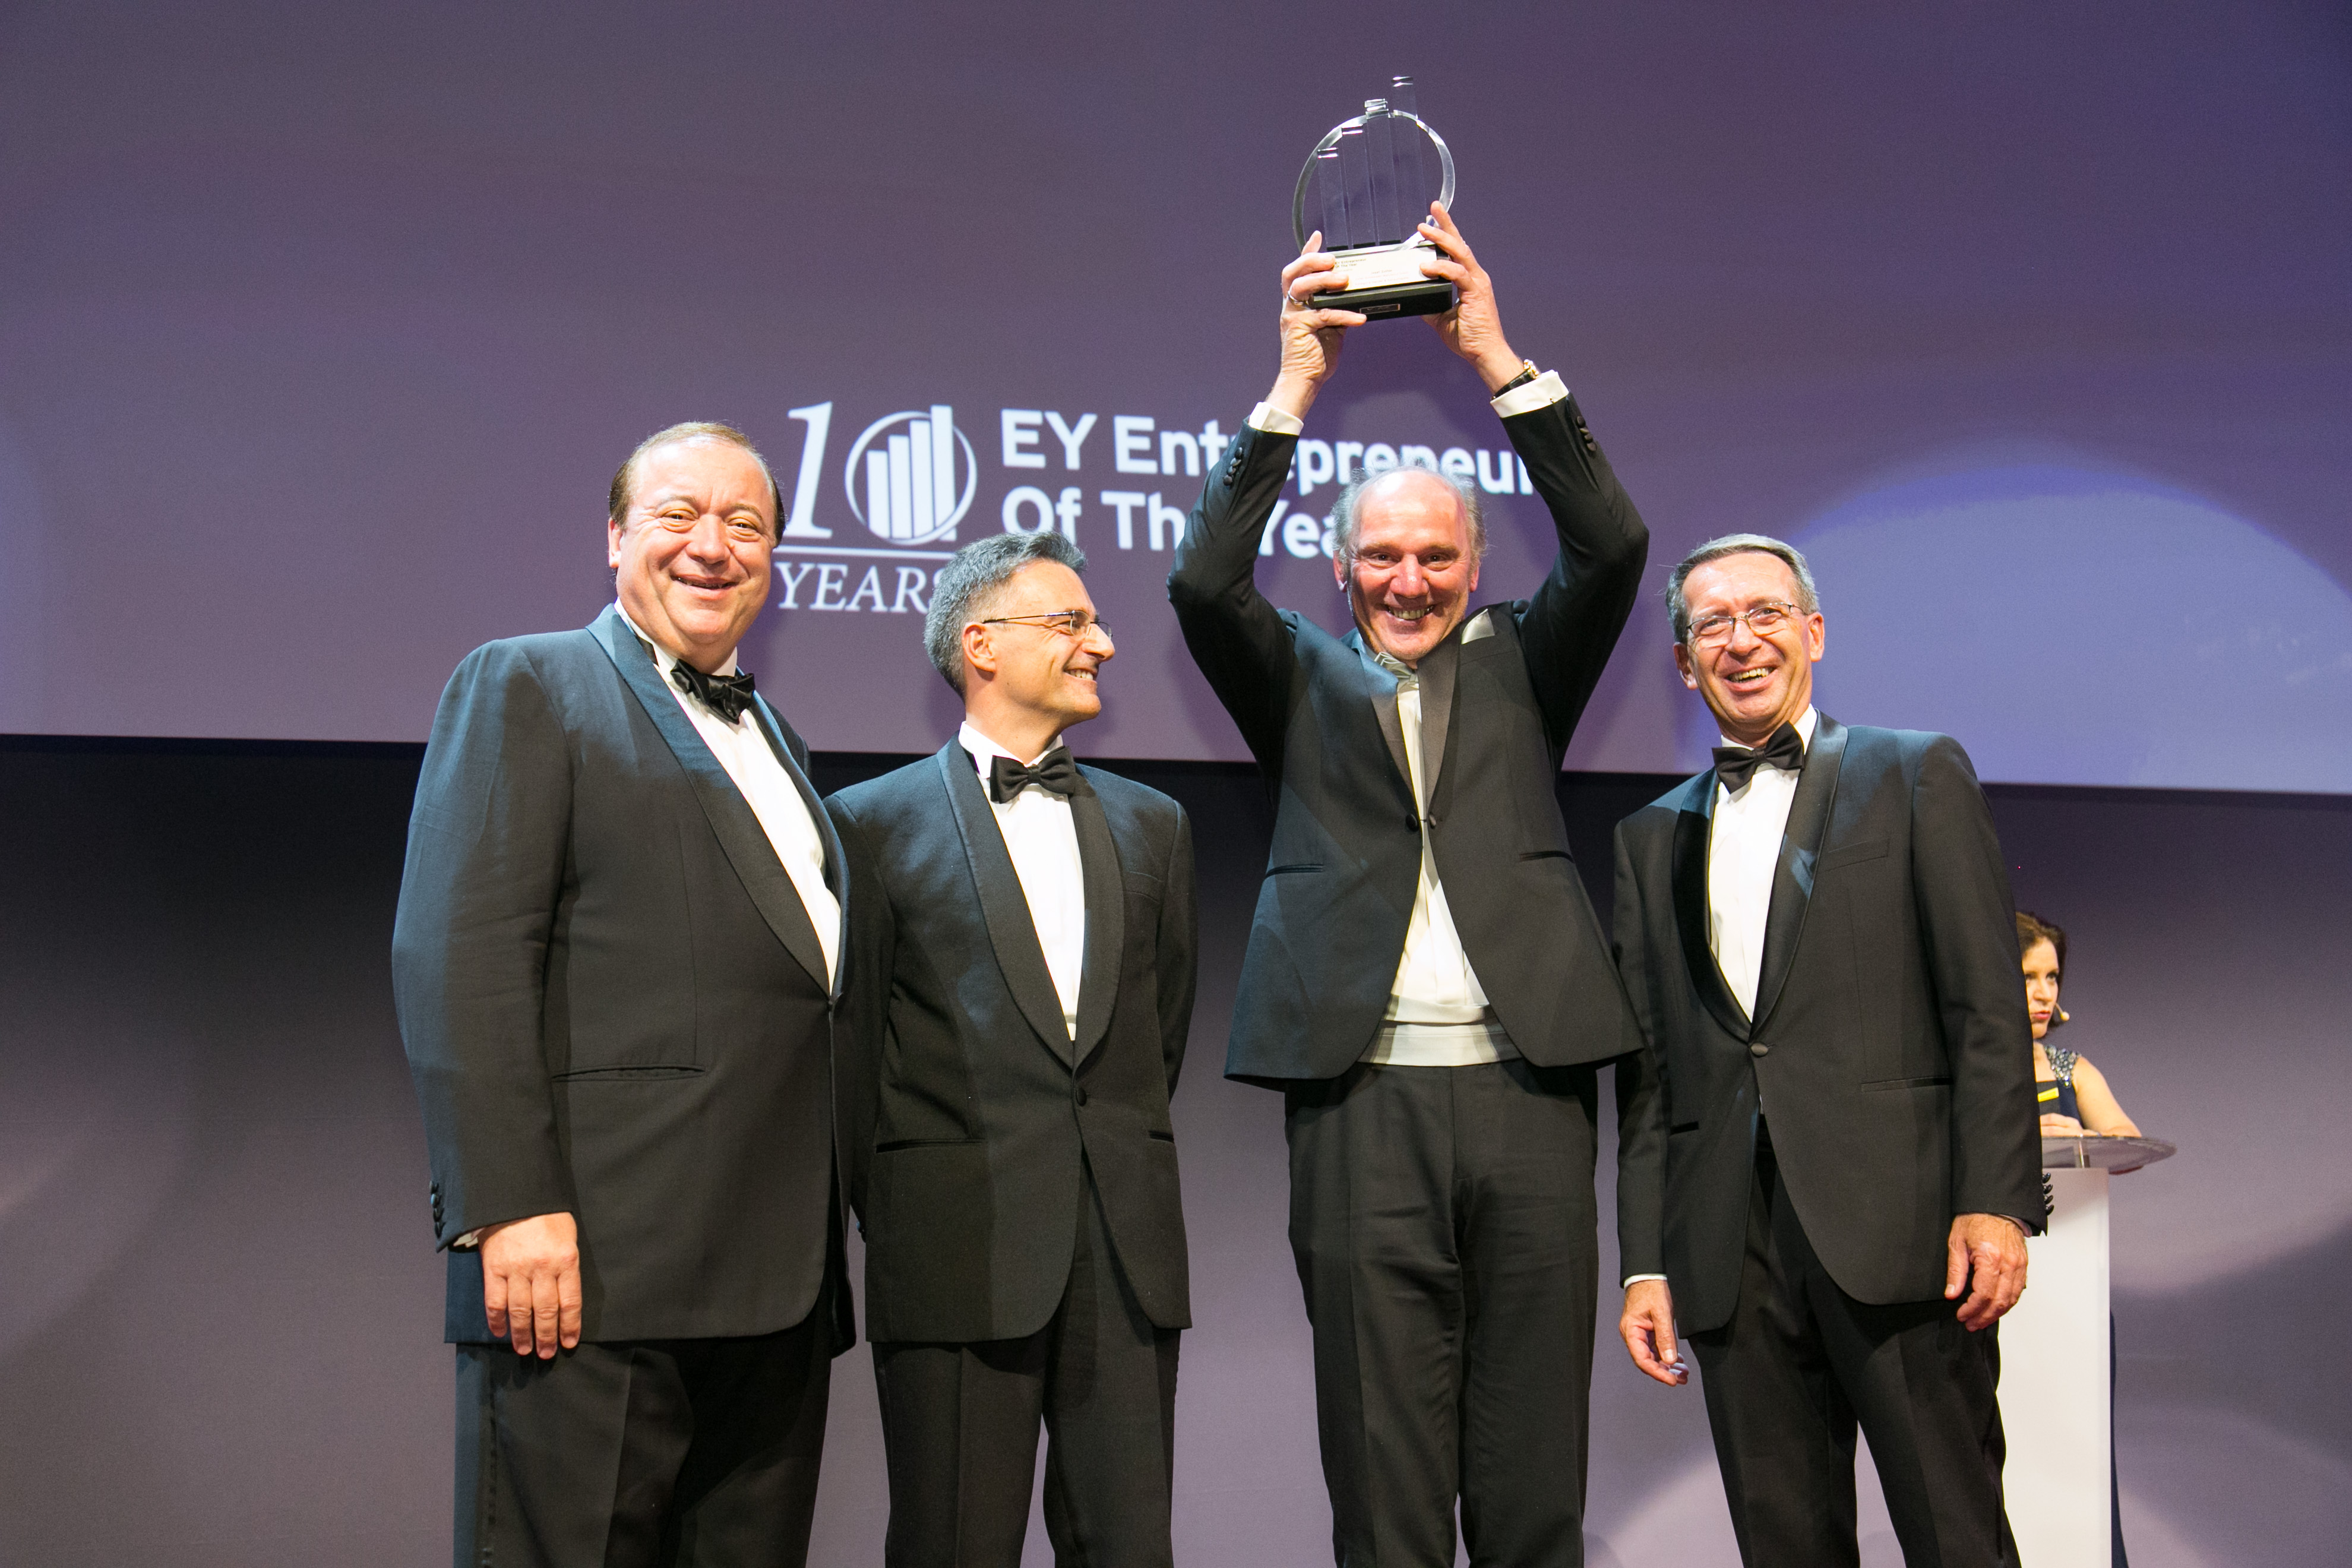 Josef Zotter ist EY Entrepreneur Of The Year 2015